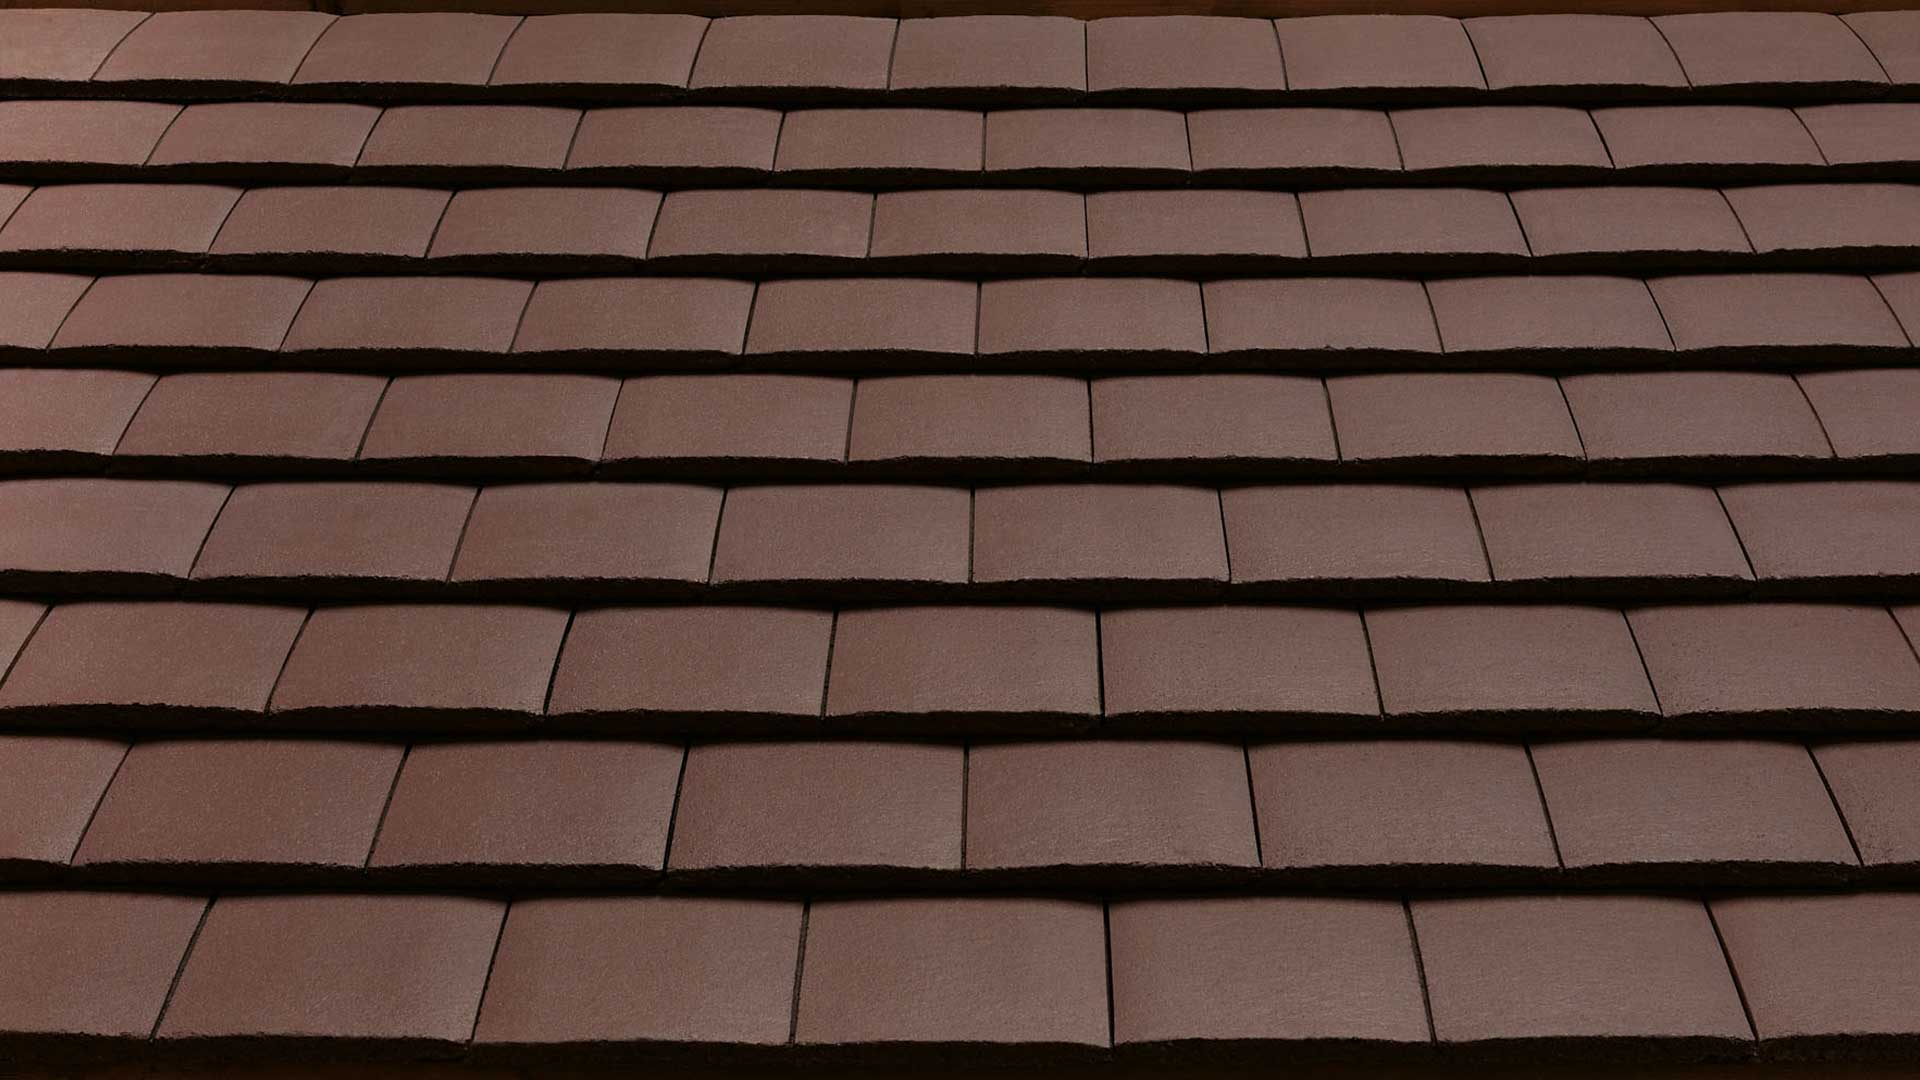 Marley Eternit Plain Concrete Tiles Western Counties Roofing